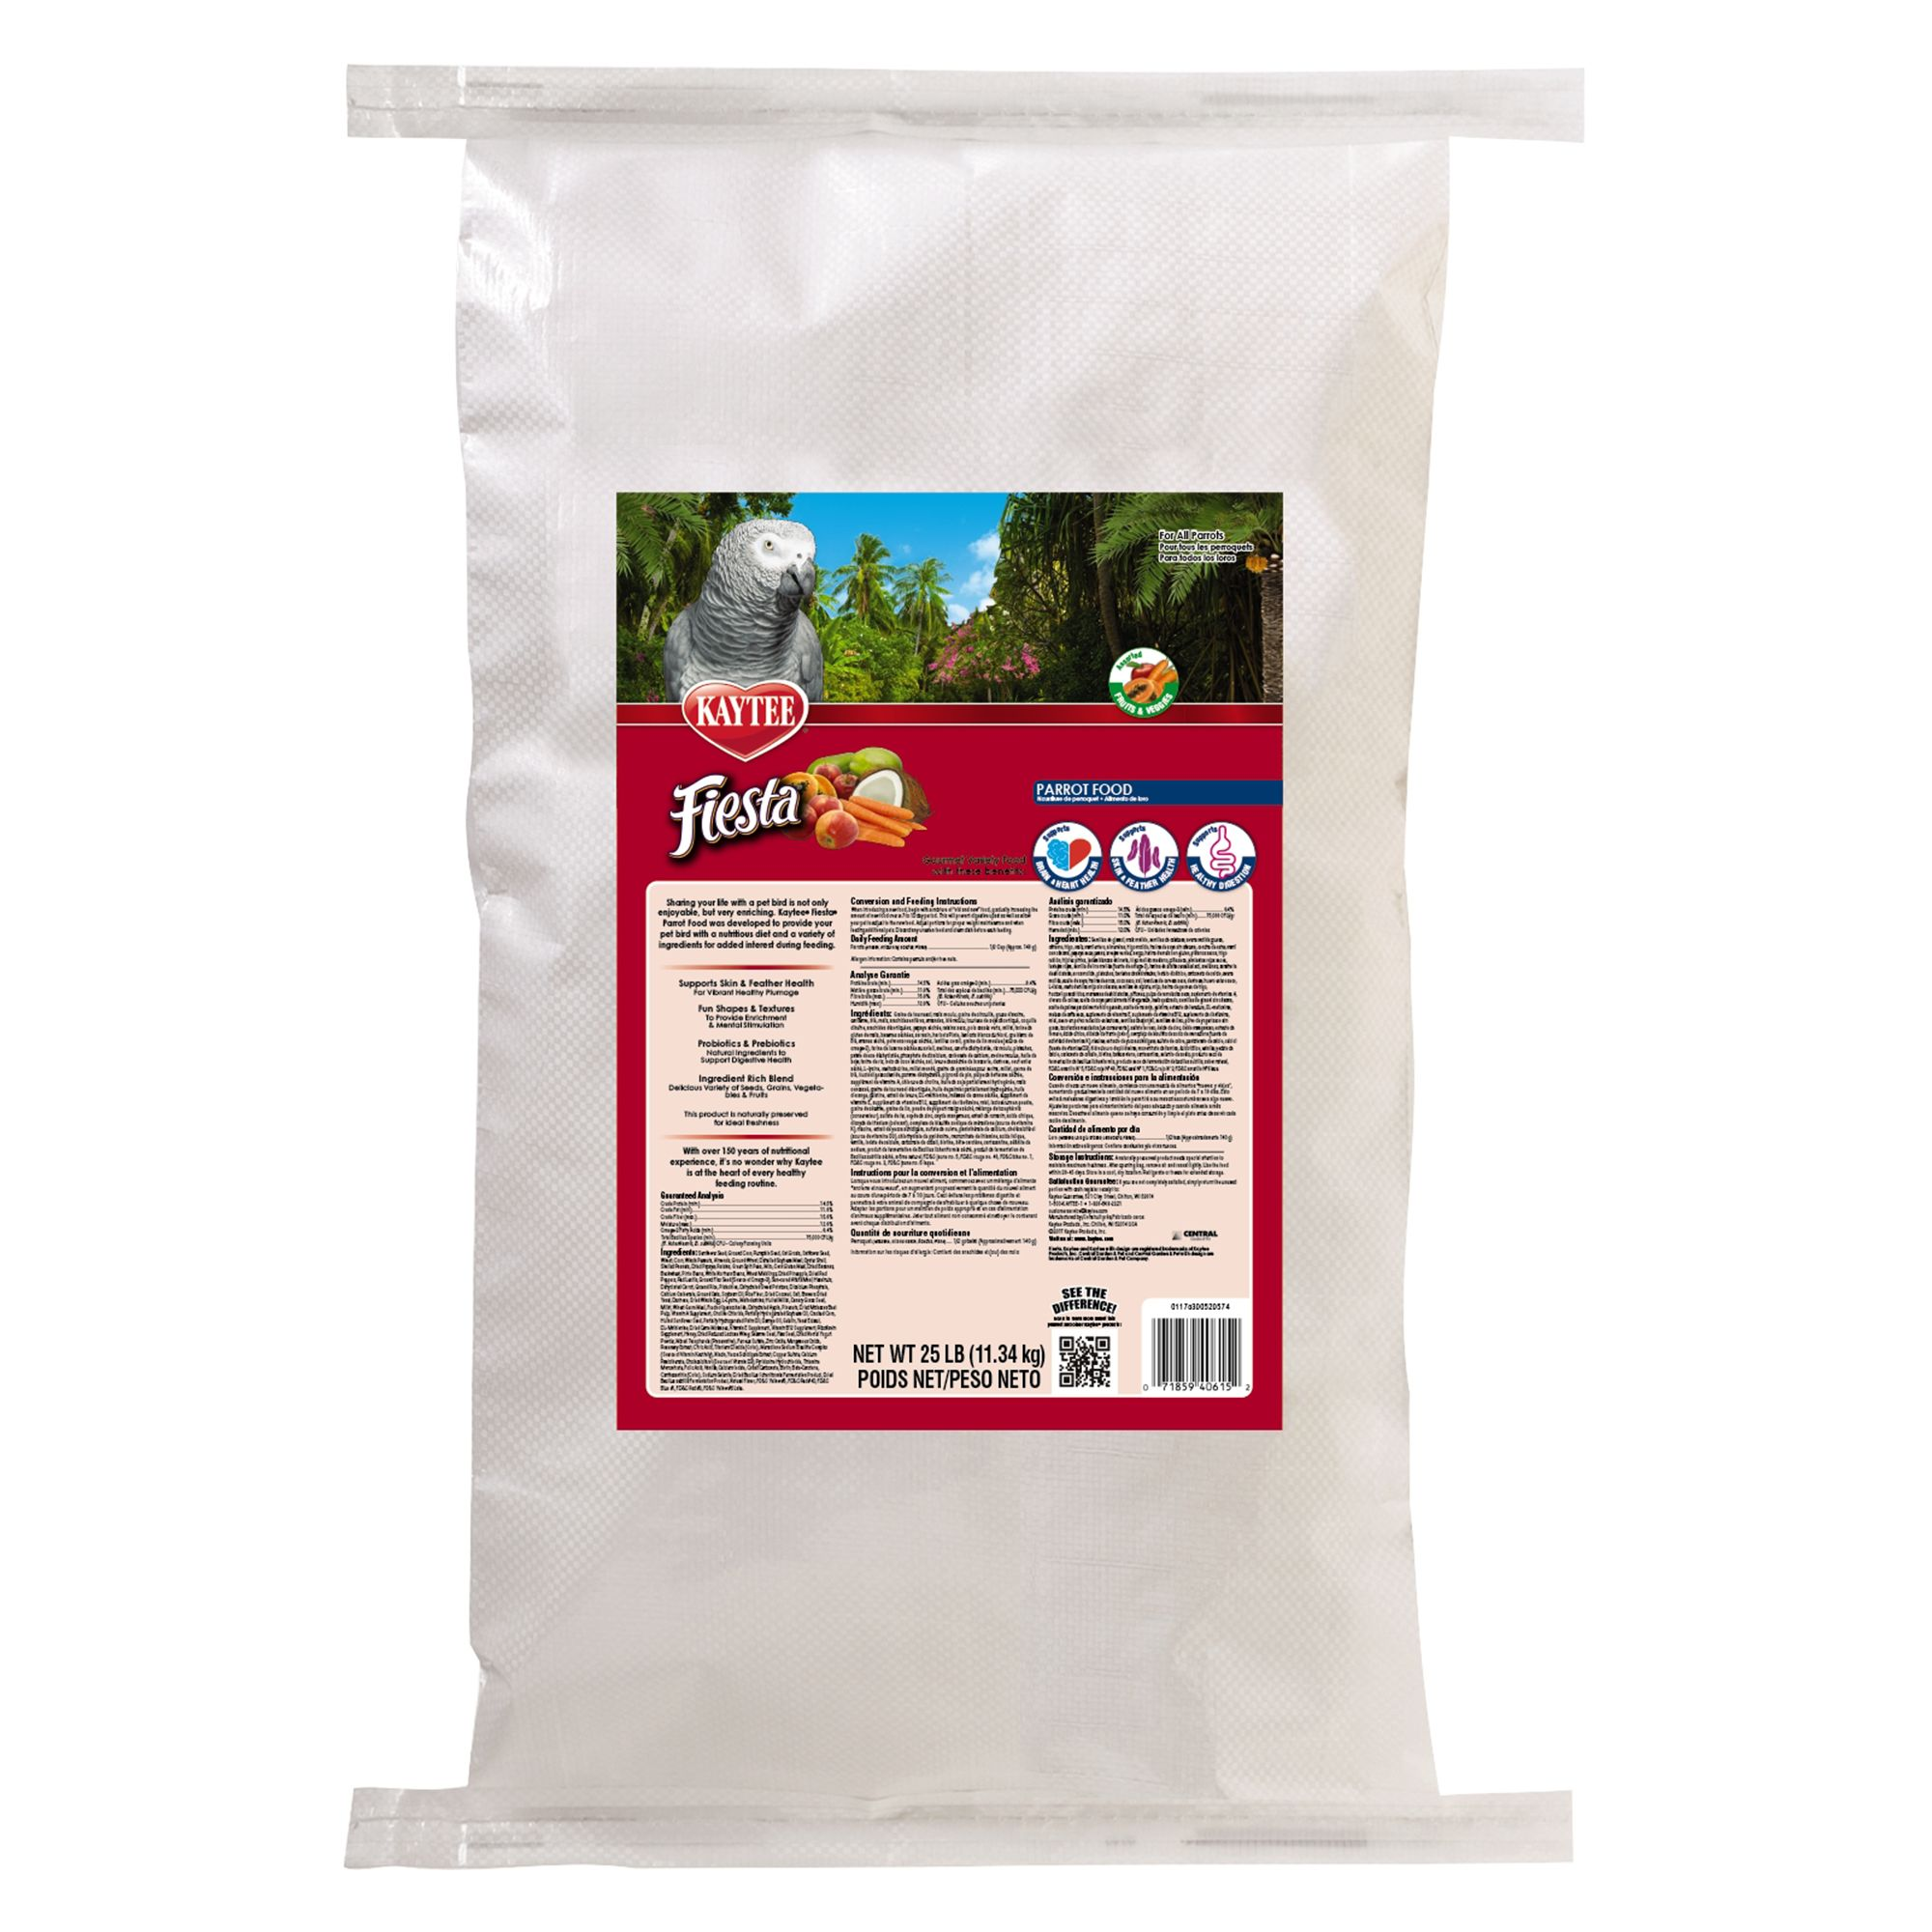 Kaytee Fiesta Parrot Food size: 25 Lb, Kibble, Seed, Fruits, Nuts, Adult, Sunflower Seed 5271796